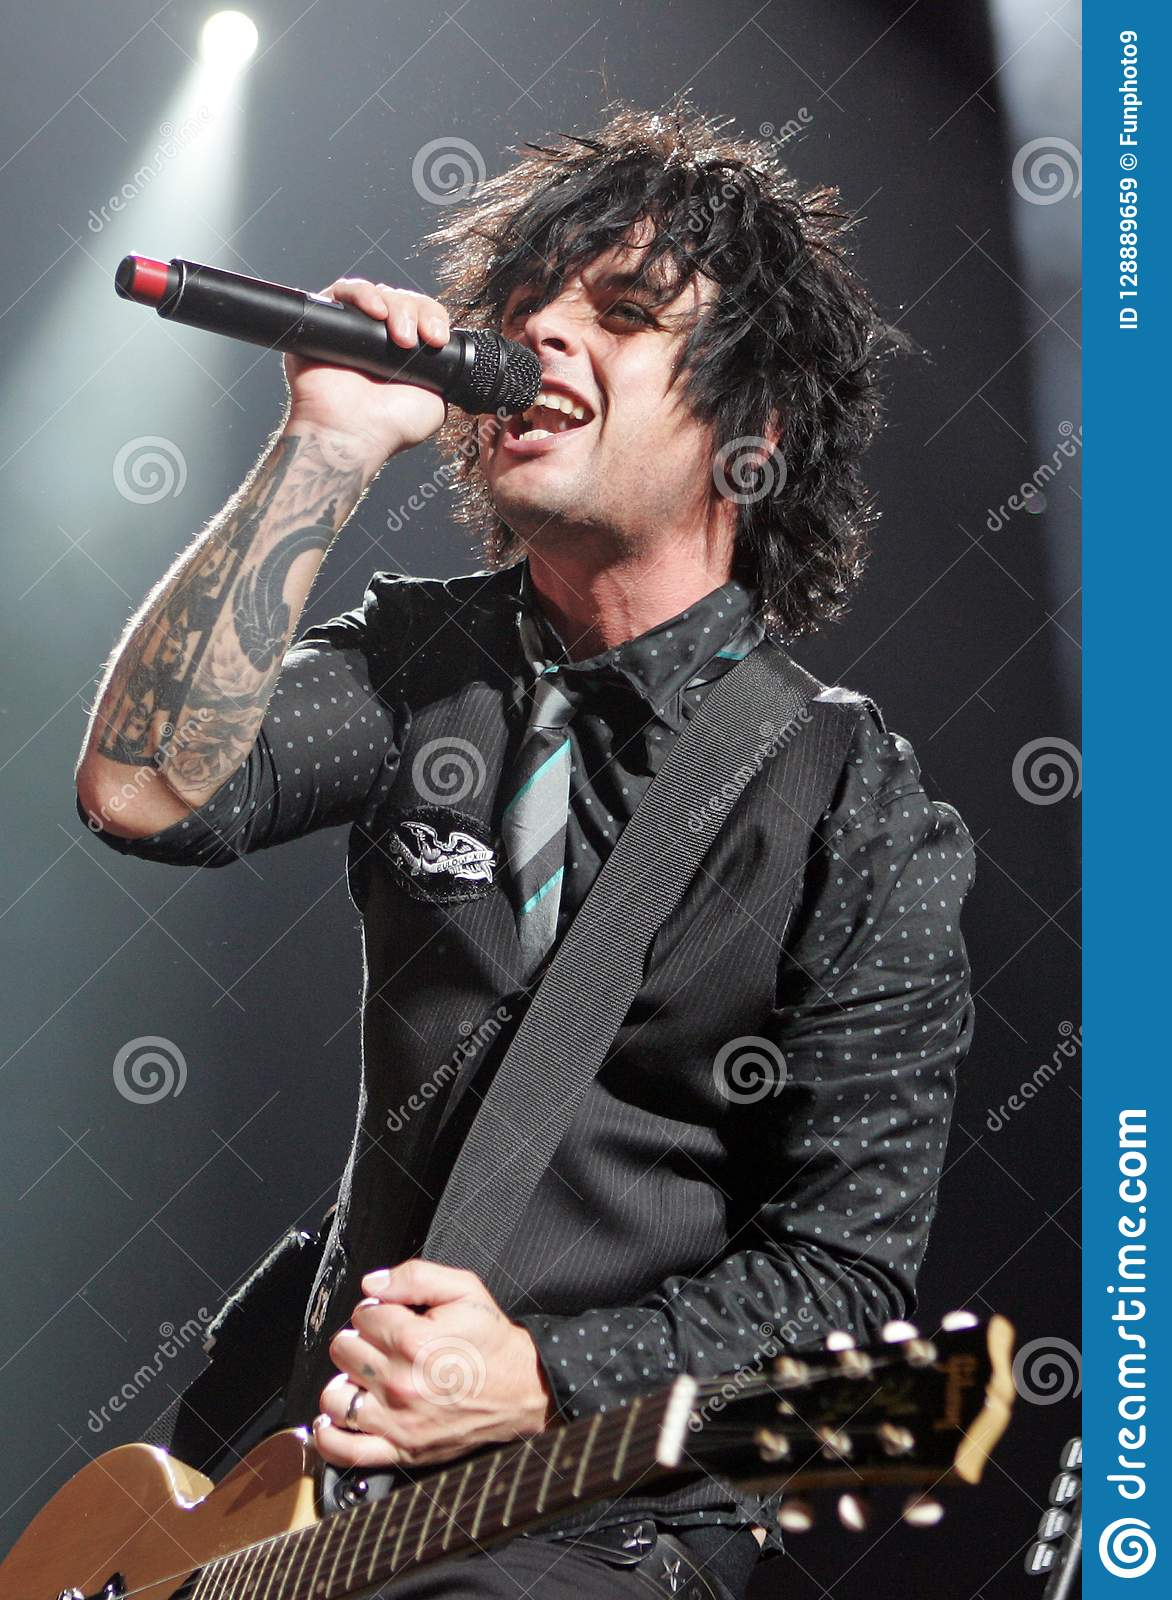 Green Day performs in concert